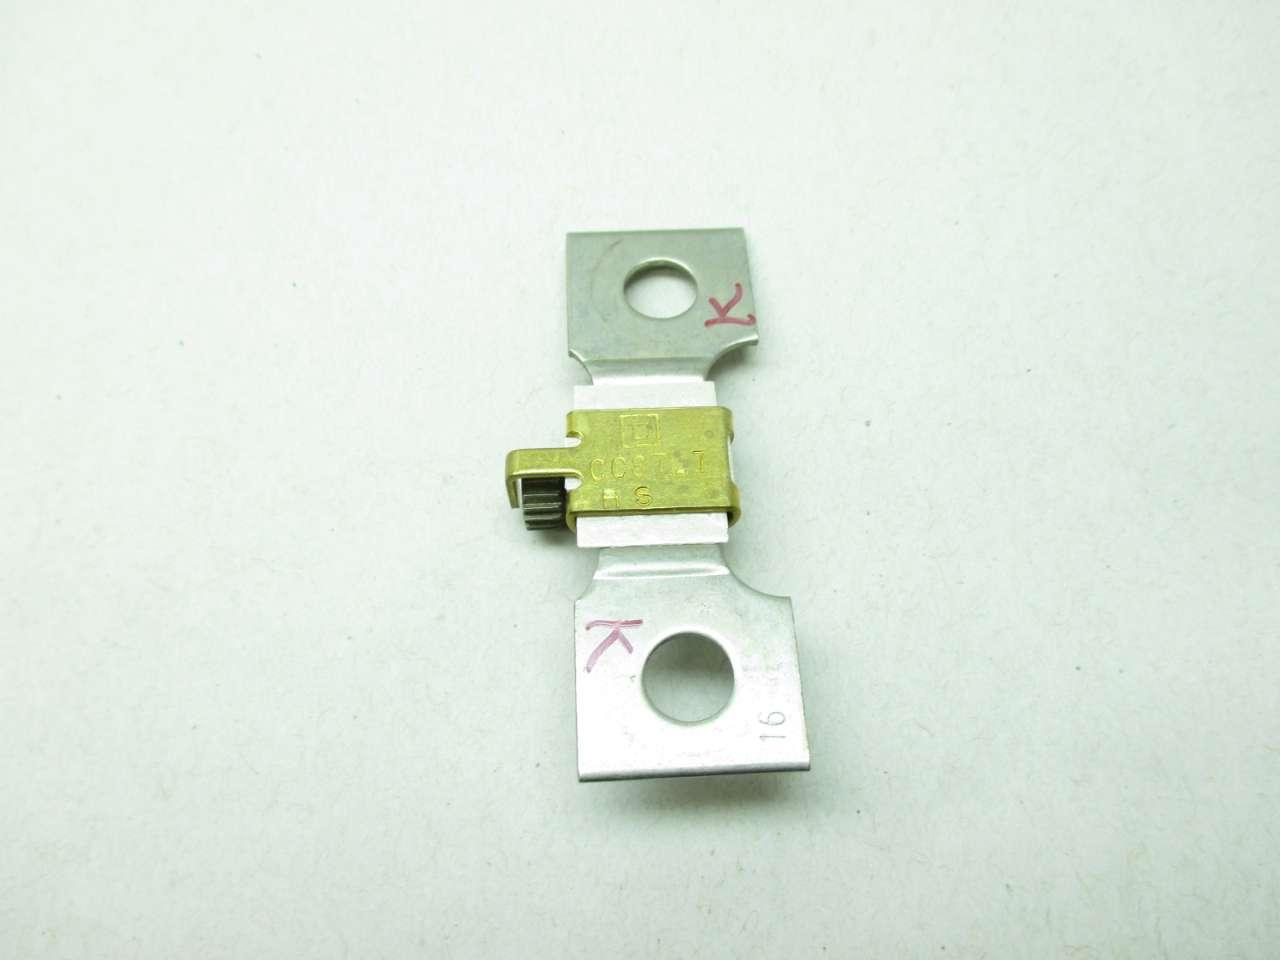 Square D CC 87.7 Overload Relay Thermal Unit Heater Element